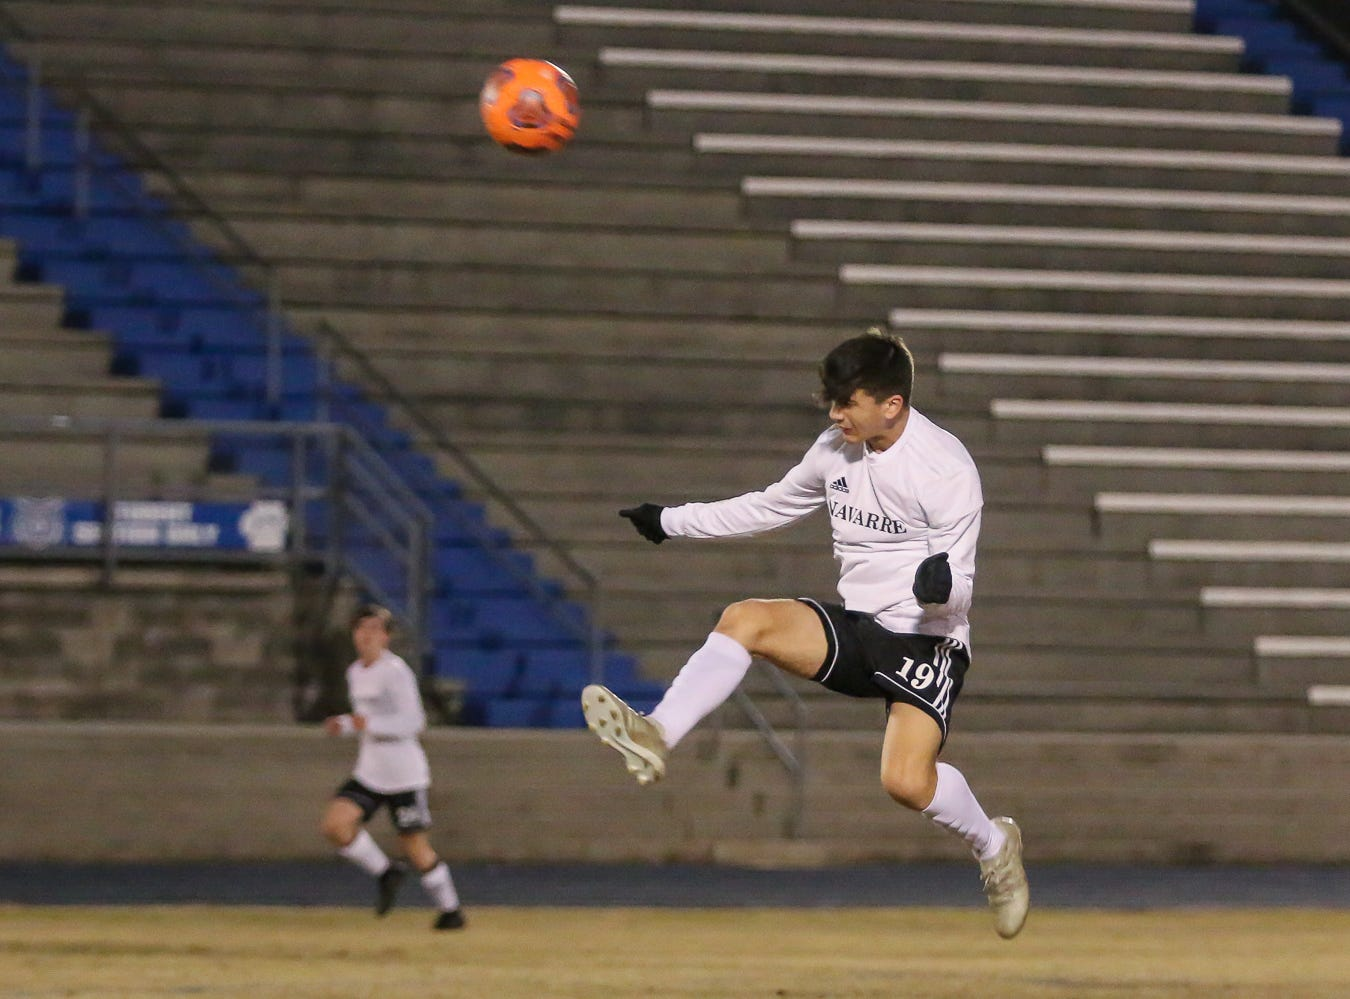 Navarre's Kobe Banks (19) knocks a header back into the Niceville zone during the District 1-4A championship game at Washington High School on Friday, February 1, 2019. For the second straight year, Niceville shut-out Navarre to win the championship. Last year, the score was 6-0 and this year it was 7-0.